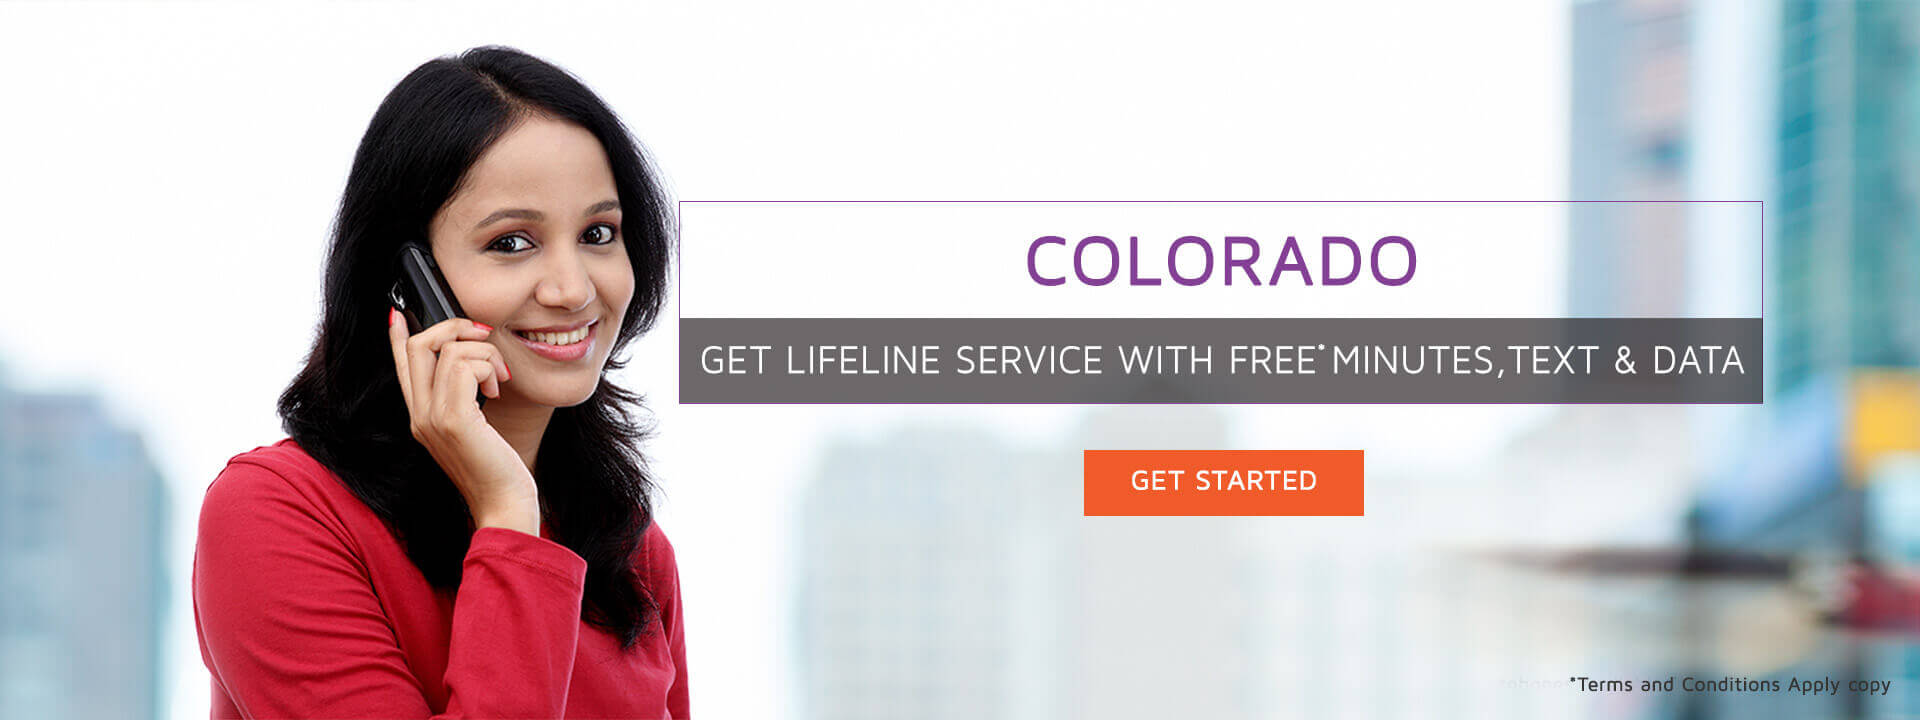 Colorado Lifeline Service